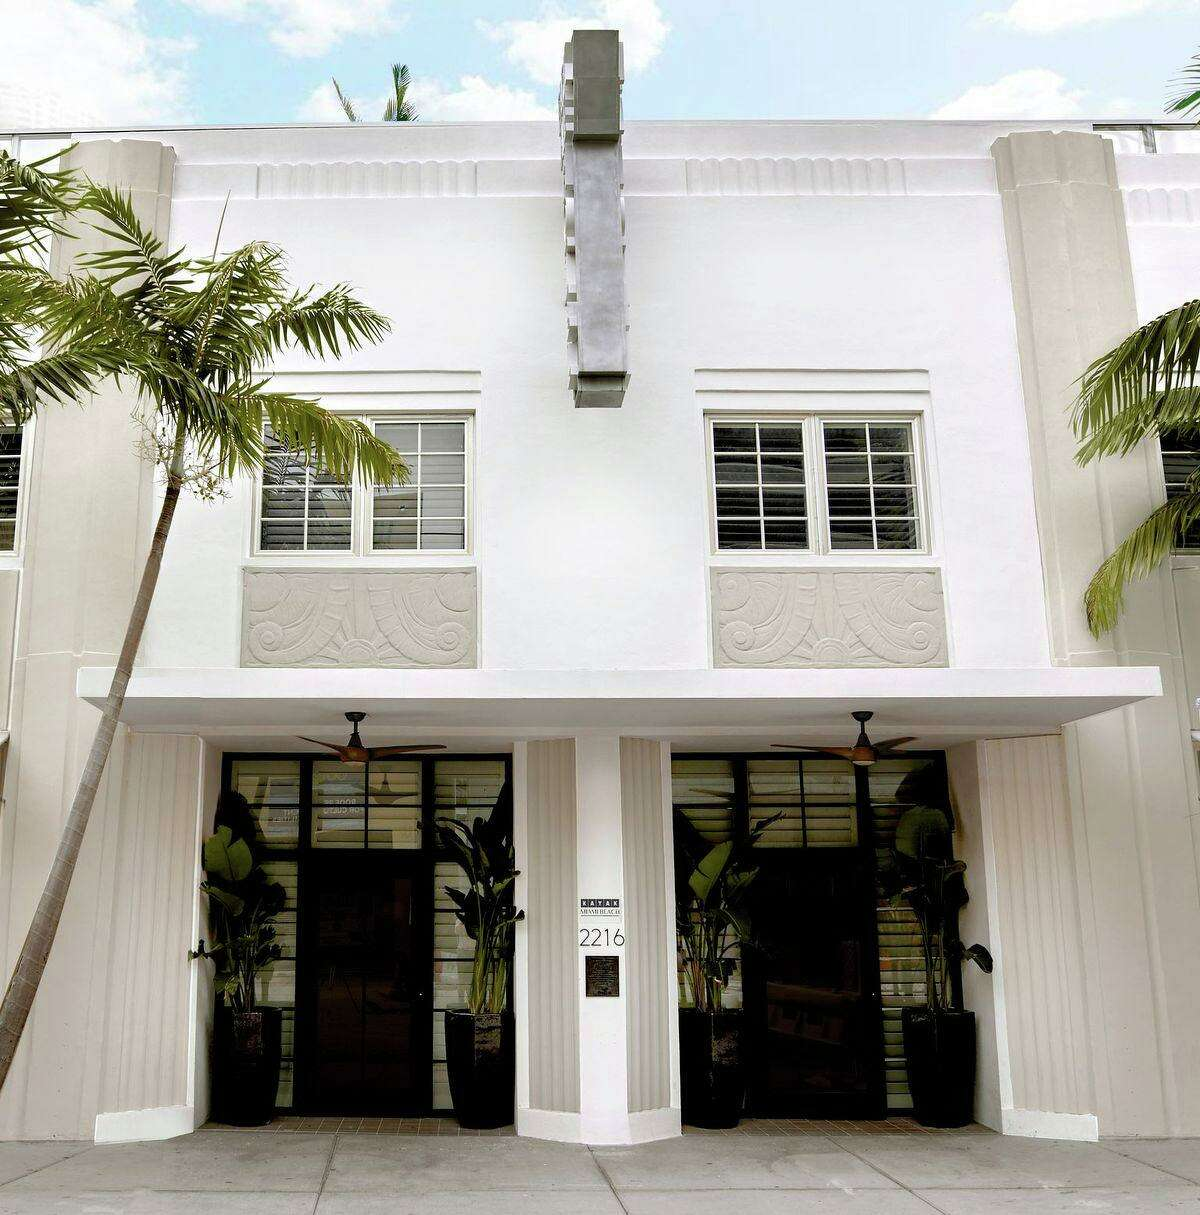 Travel-booking firm Kayak plans to open the Kayak Miami Beach hotel in April 2021 in Miami Beach, Fla.